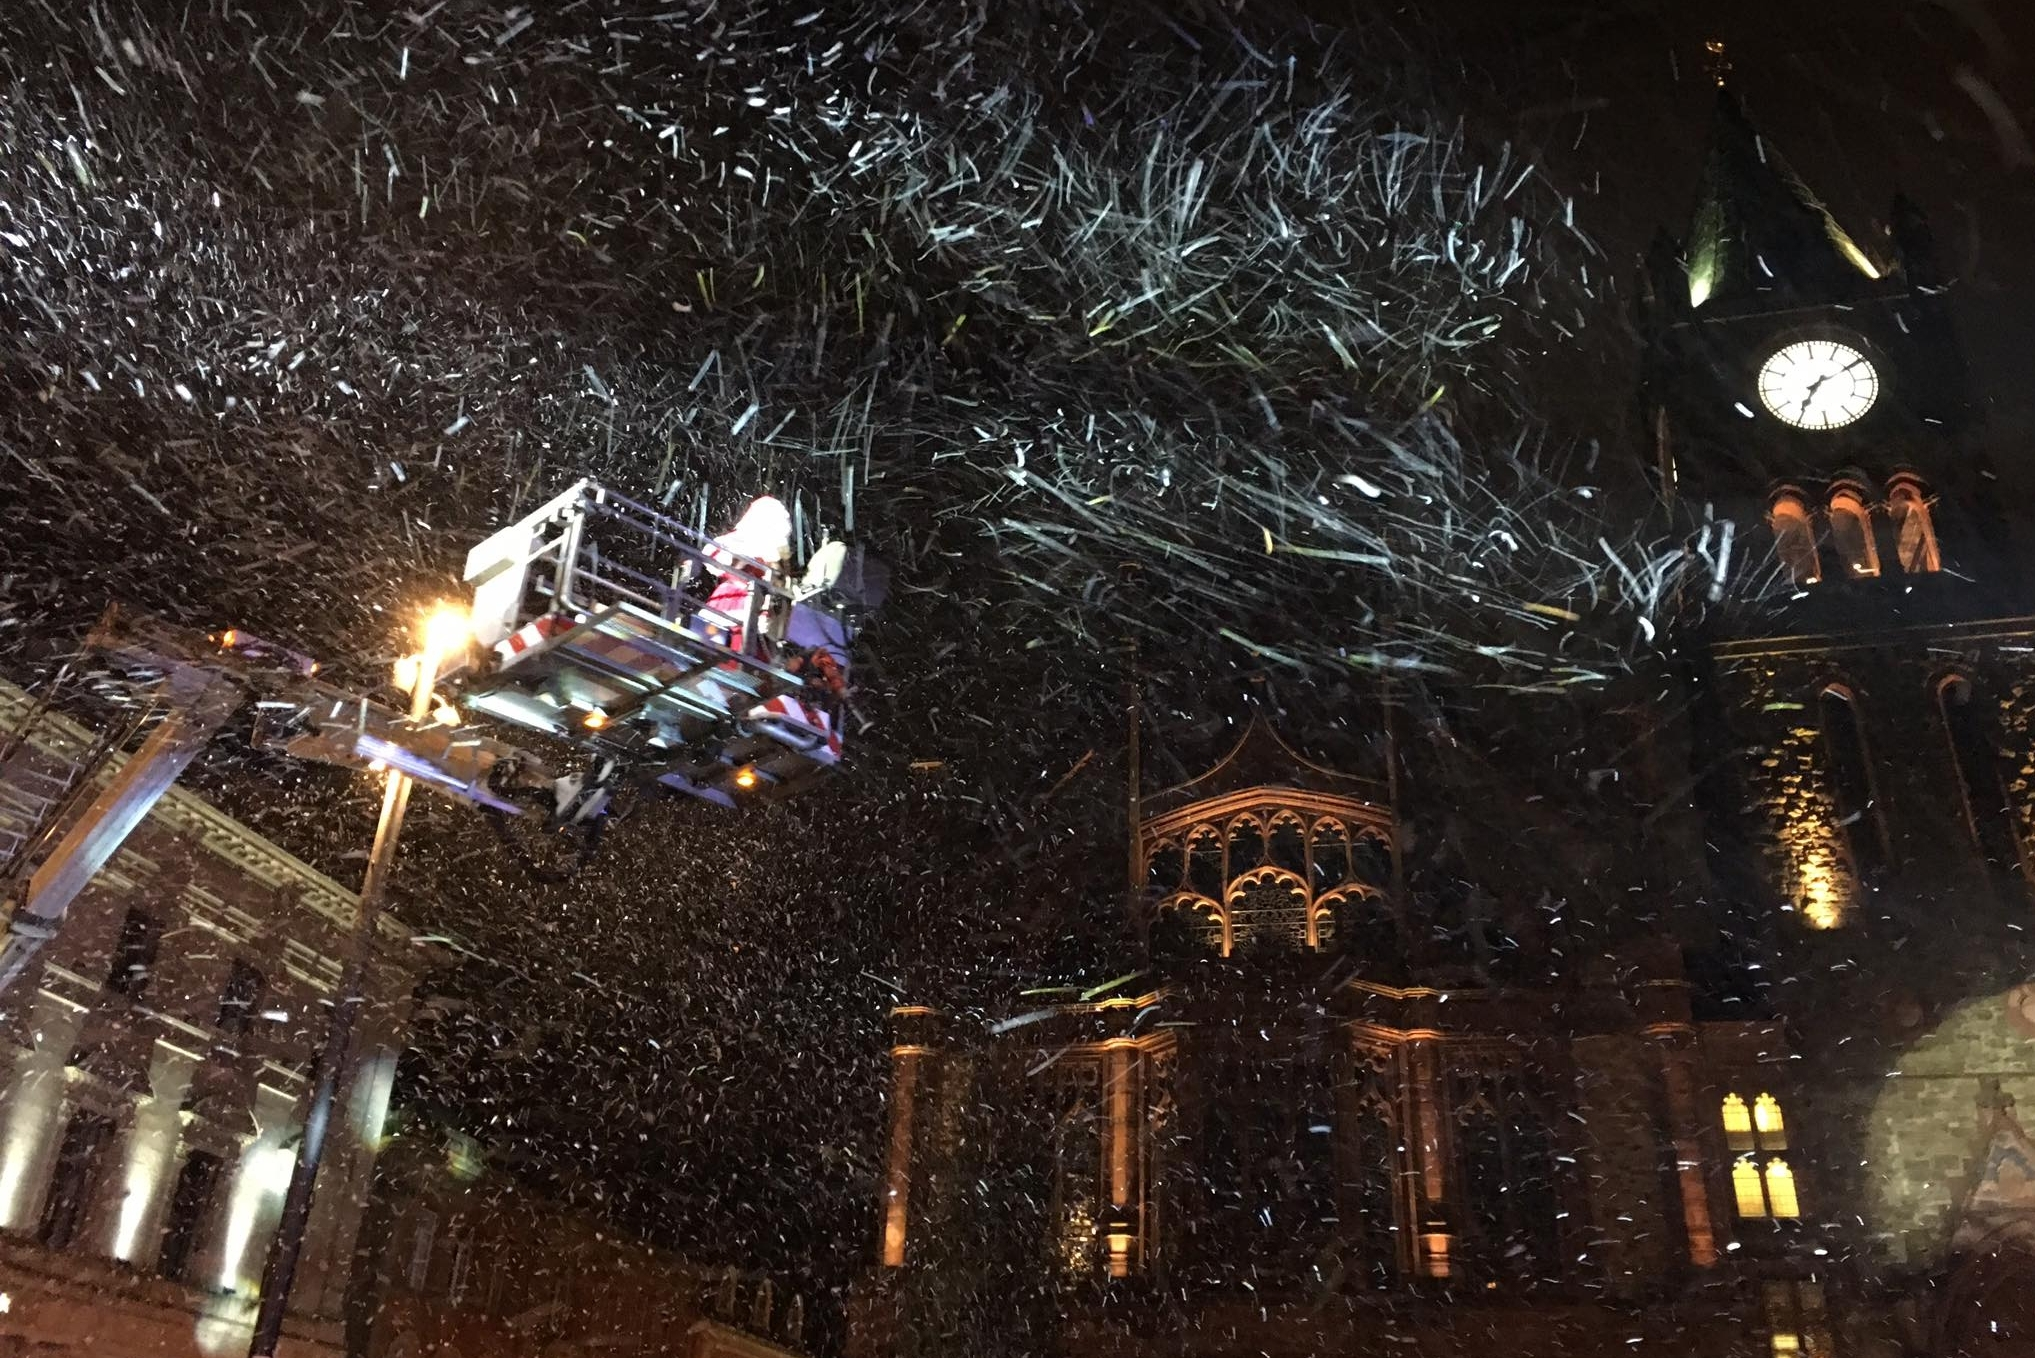 Snow Machines - Snow machines add a touch of magic to Christmas and New Year events. Our snow machines create fantasies across the UK. Local Councils find their Christmas Lighting Ceremonies receive lots of compliments on social media when they add our snow machines.